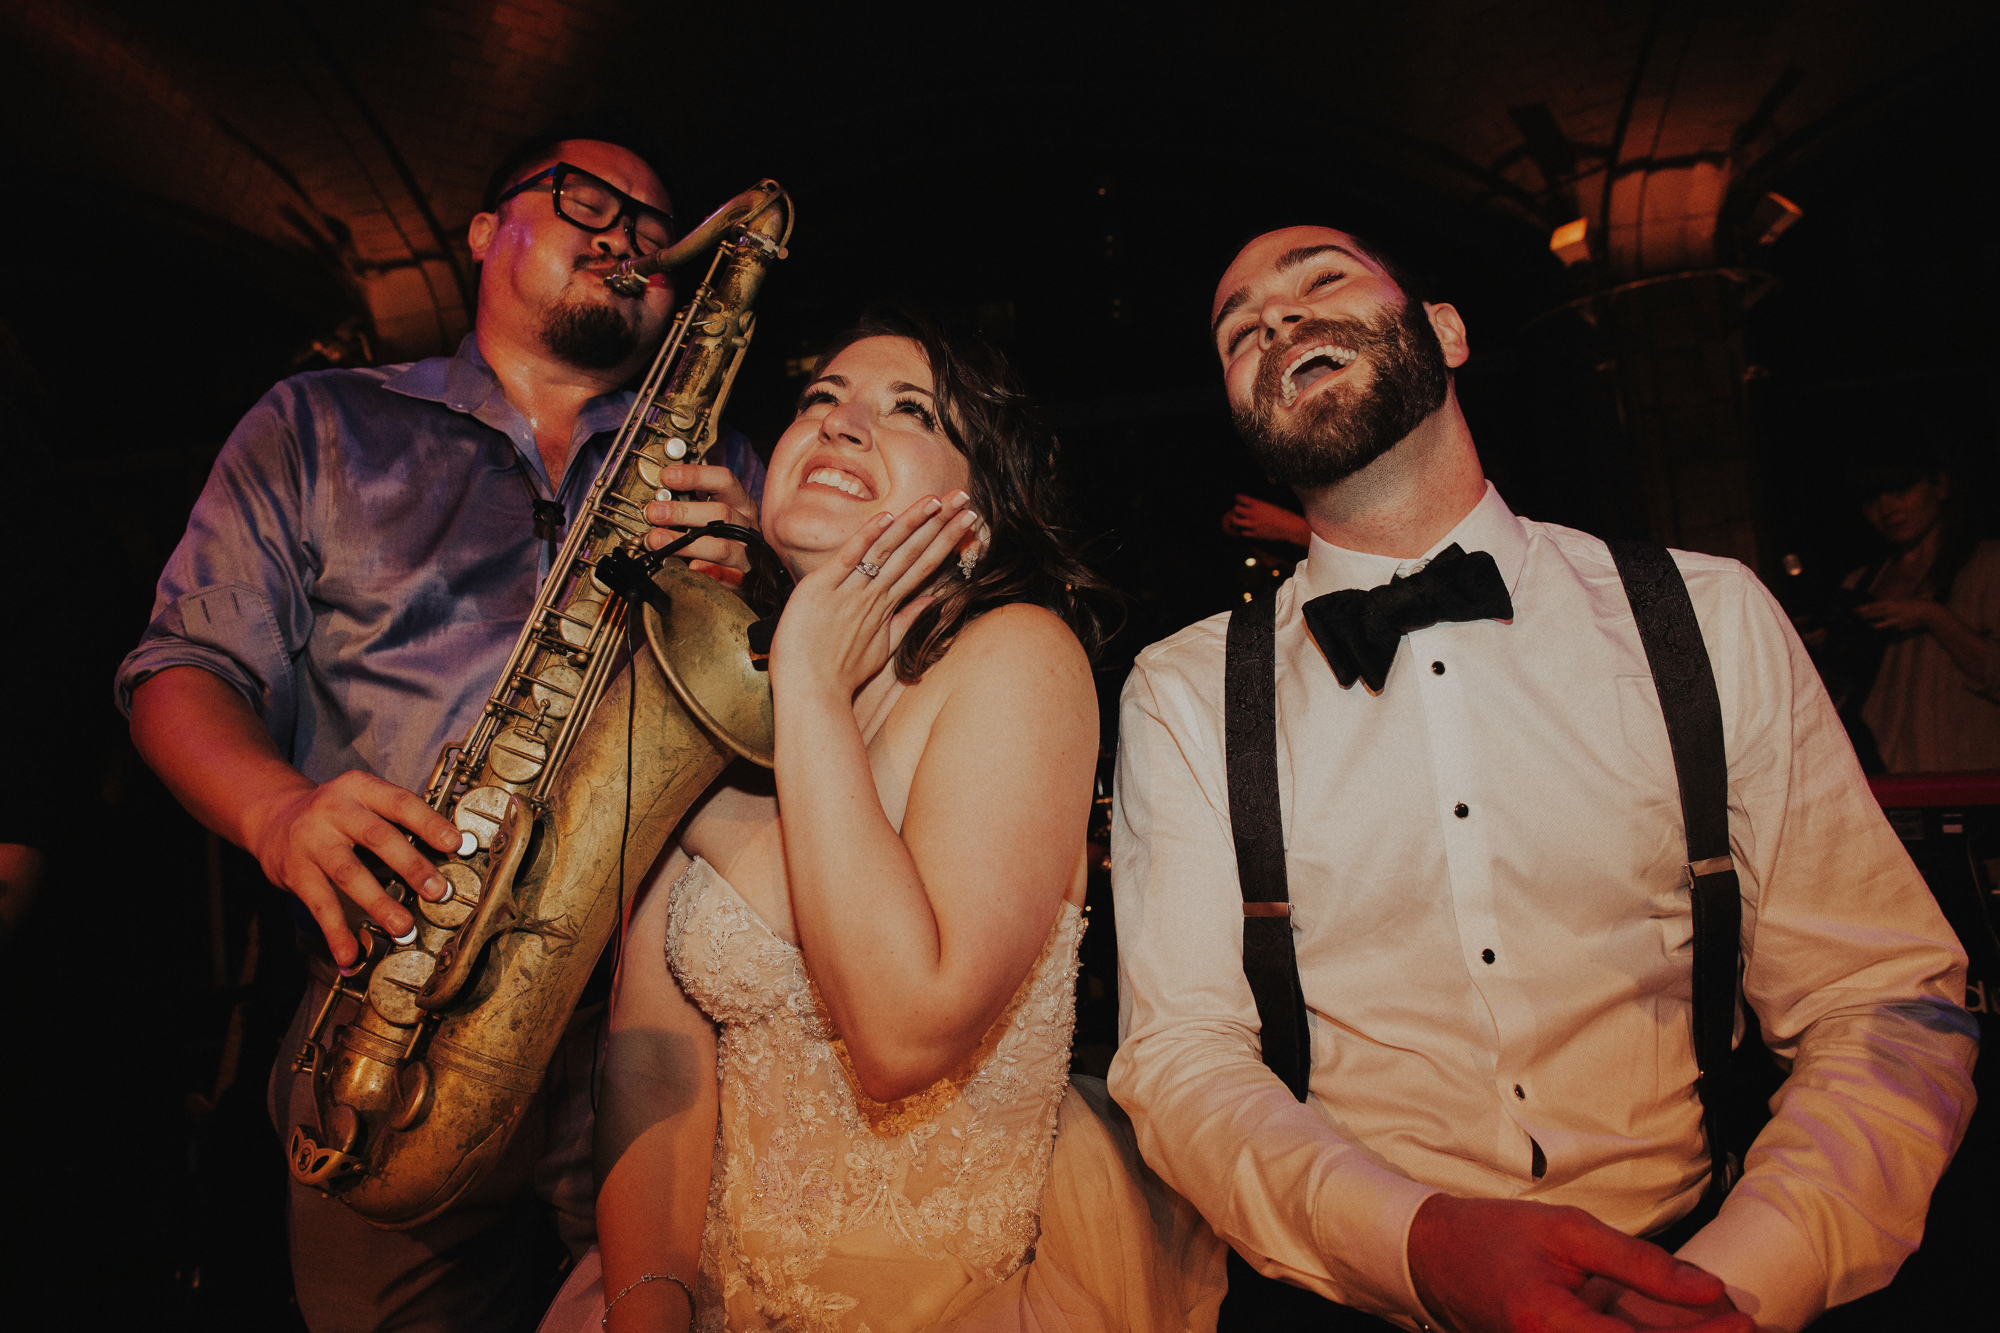 Bride and groom parting with saxaphone - photo by Dan O'Day